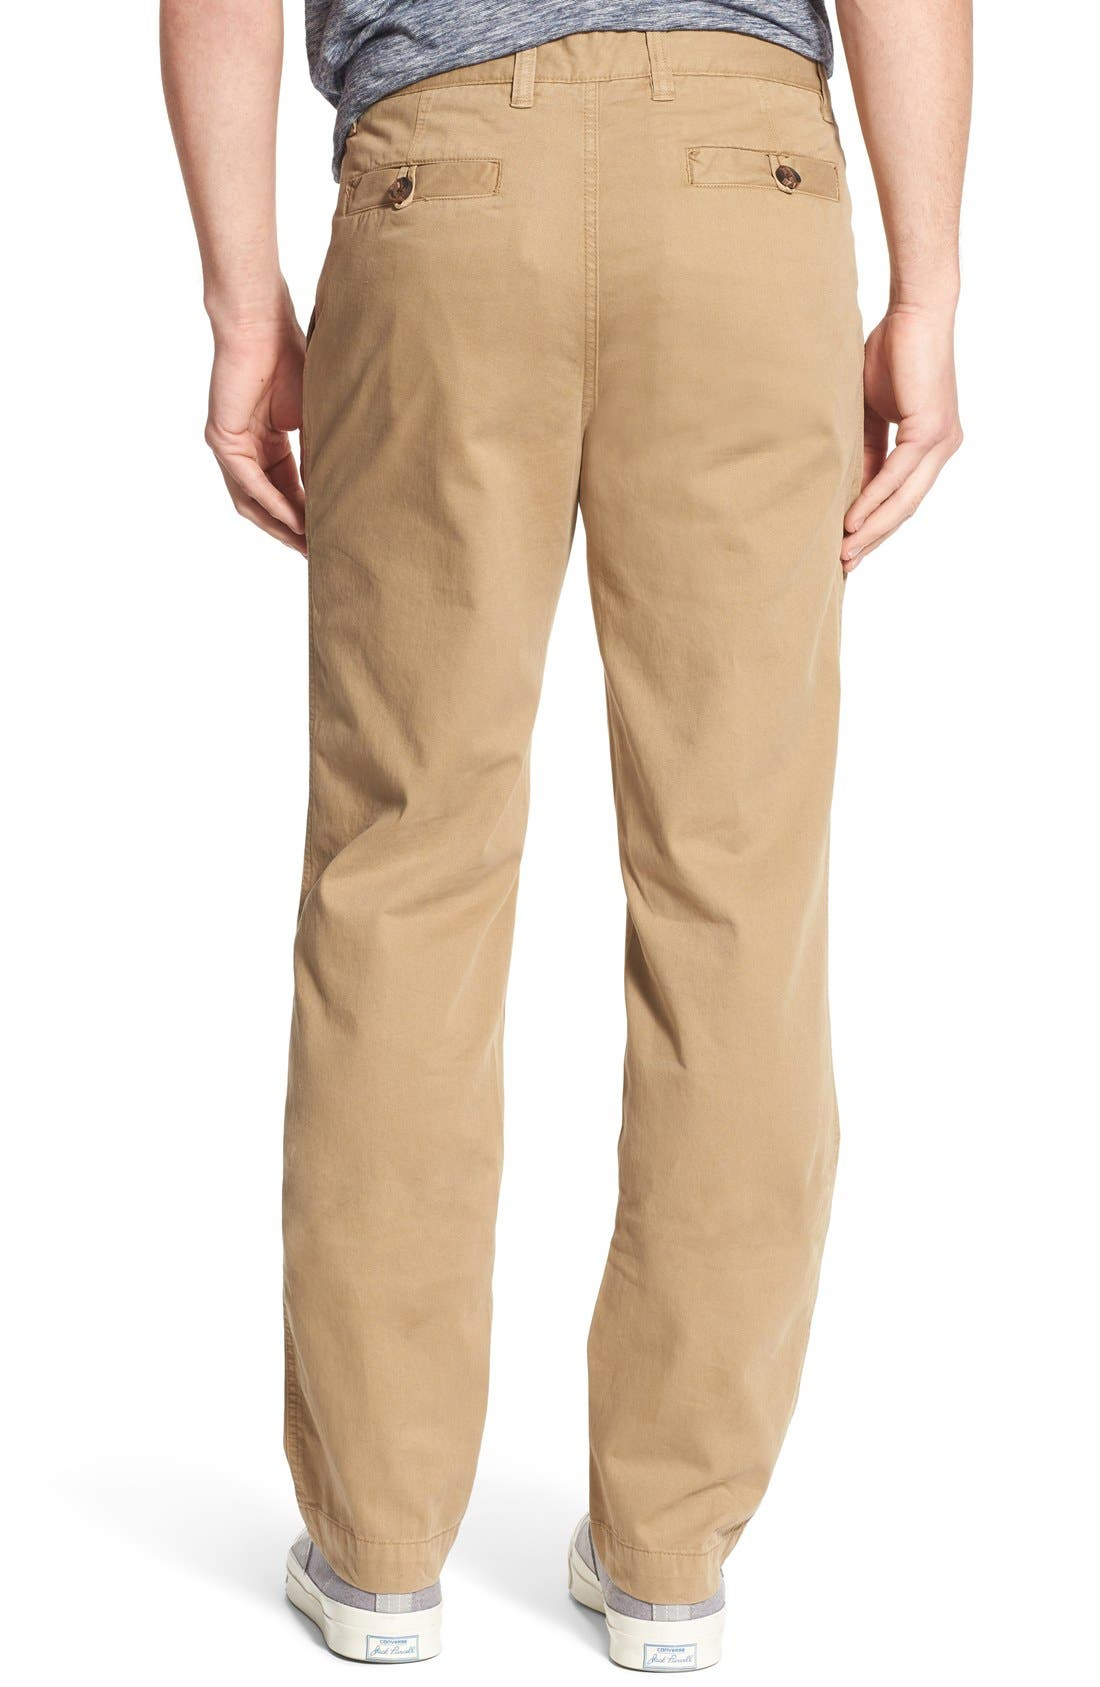 'Sahara' Trim Fit Vintage Washed Twill Chinos,                             Alternate thumbnail 14, color,